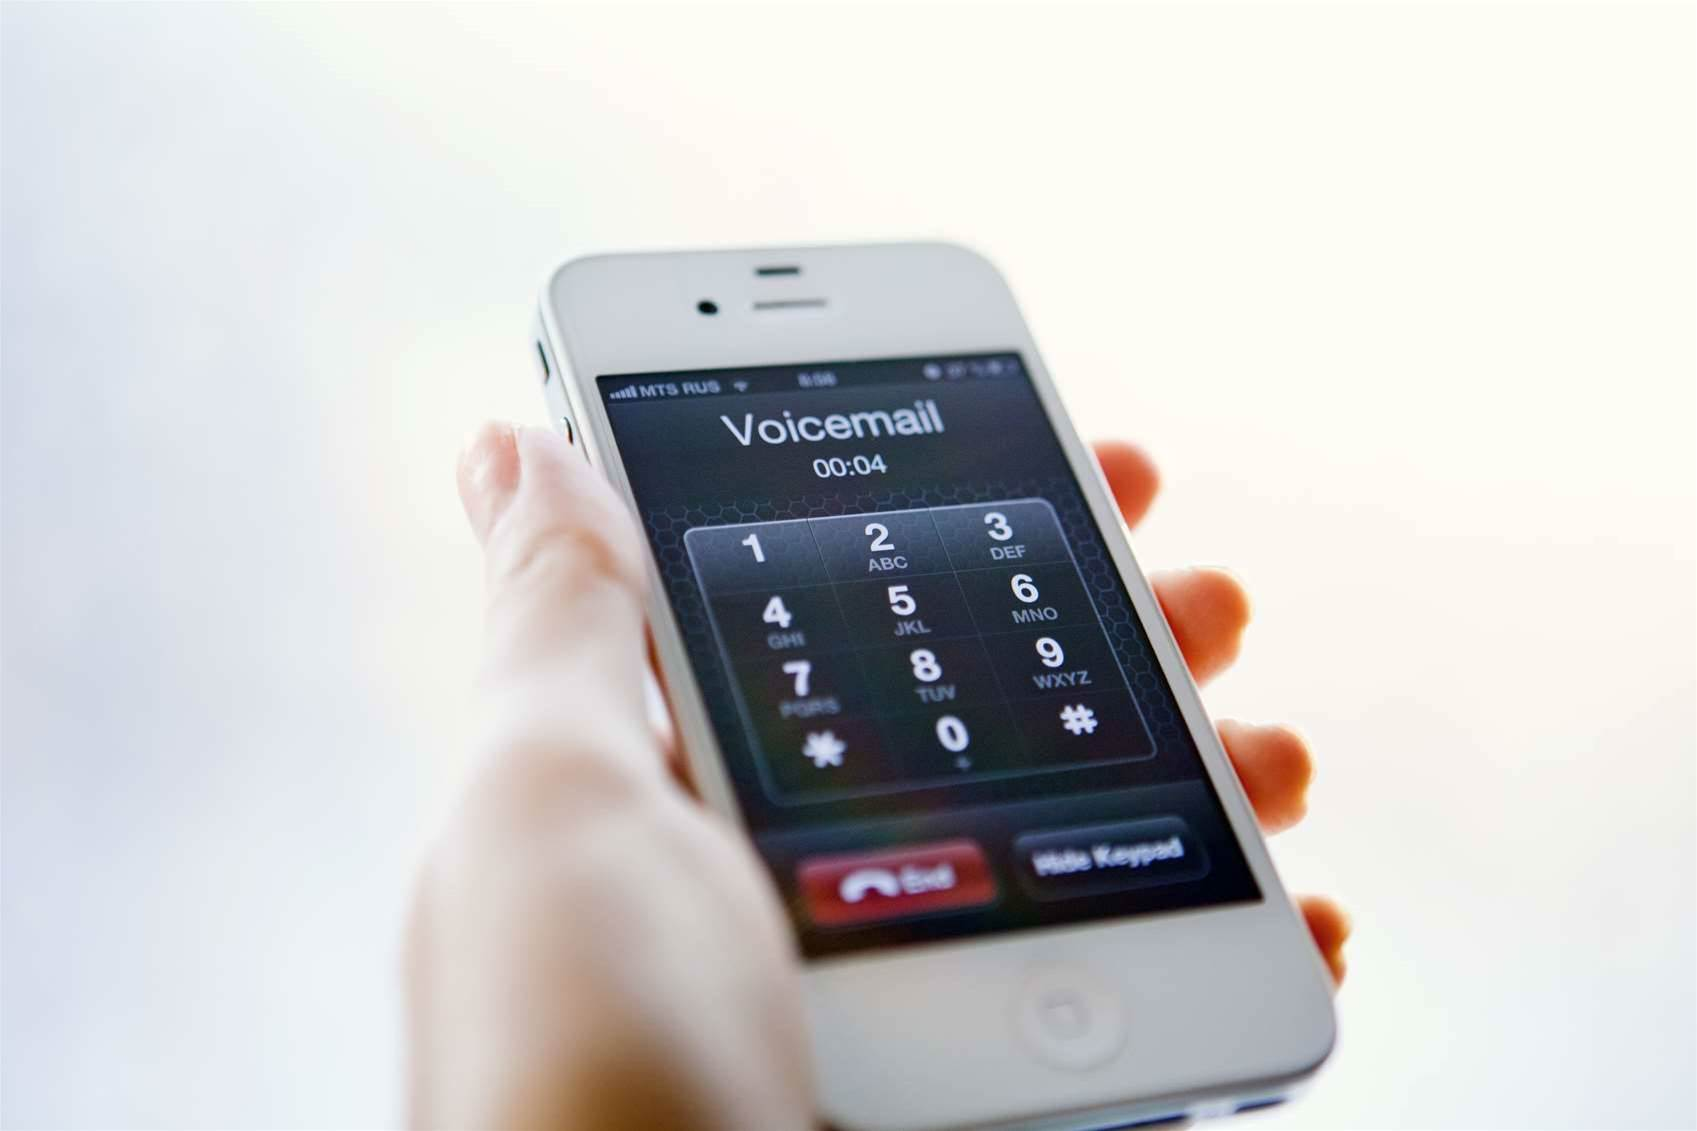 Glitch gives Virgin Mobile users access to strangers' voicemail